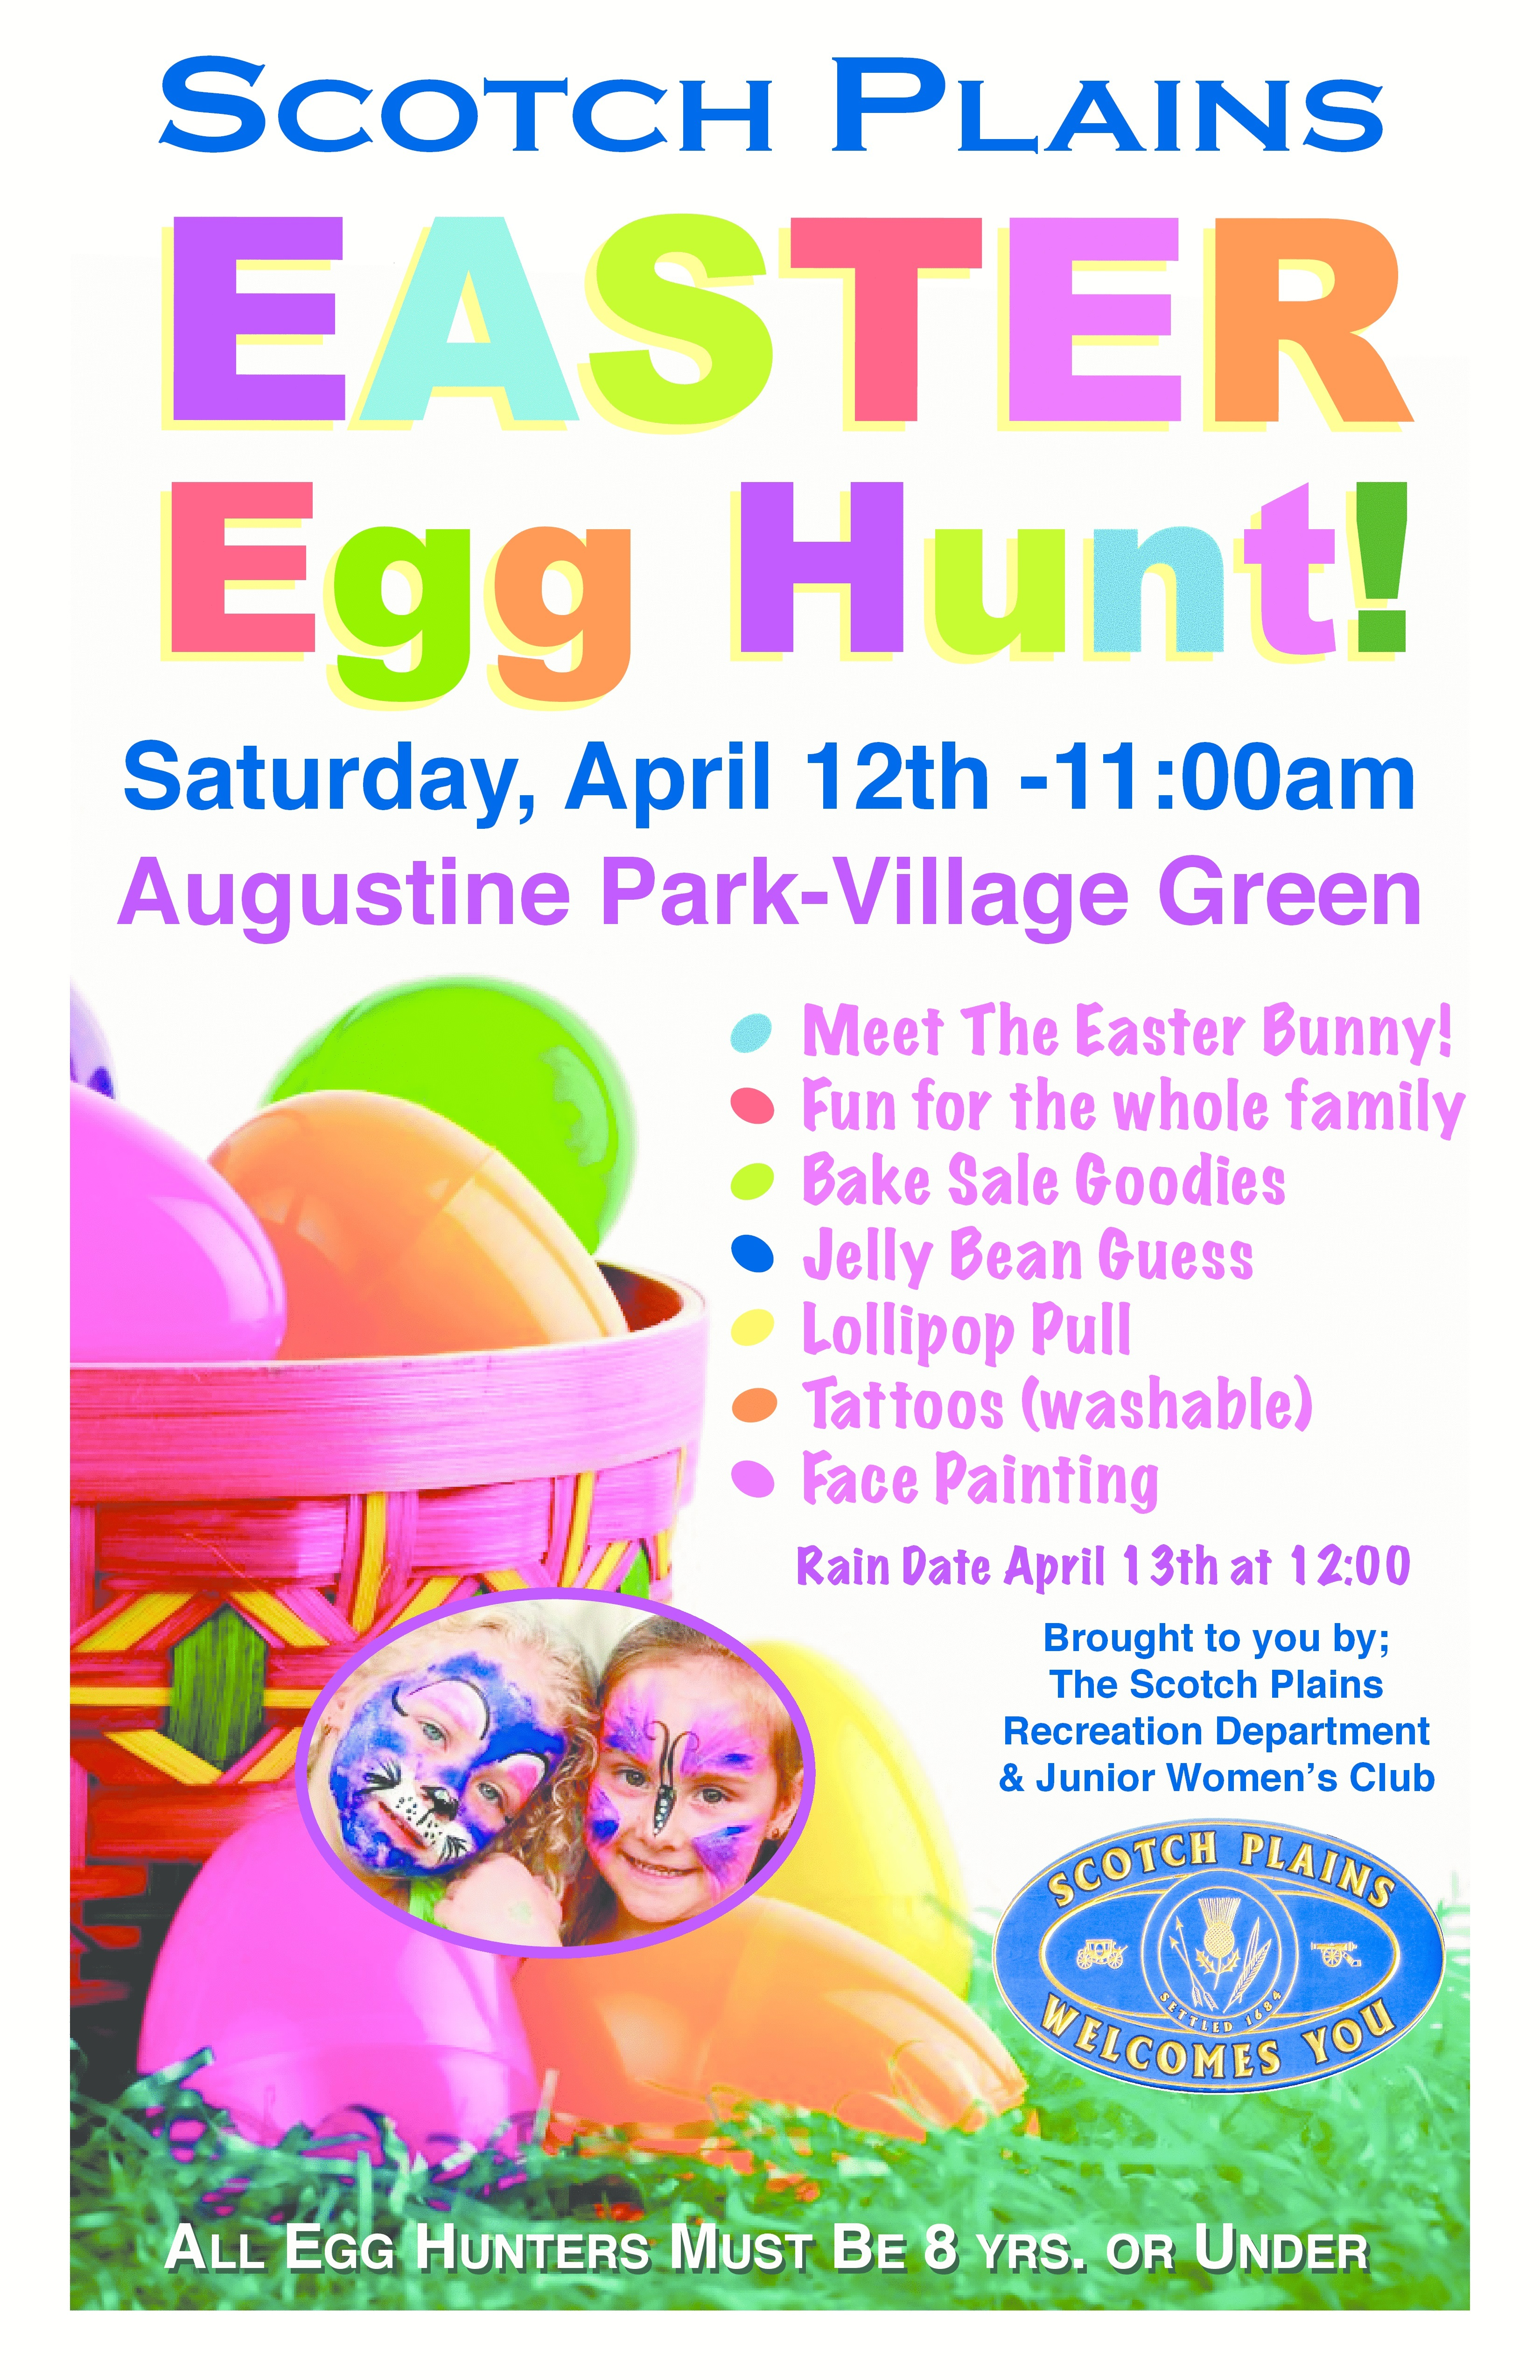 8192d247eb66a7eb5014_Easter_Egg_Hunt_Flyer.jpg